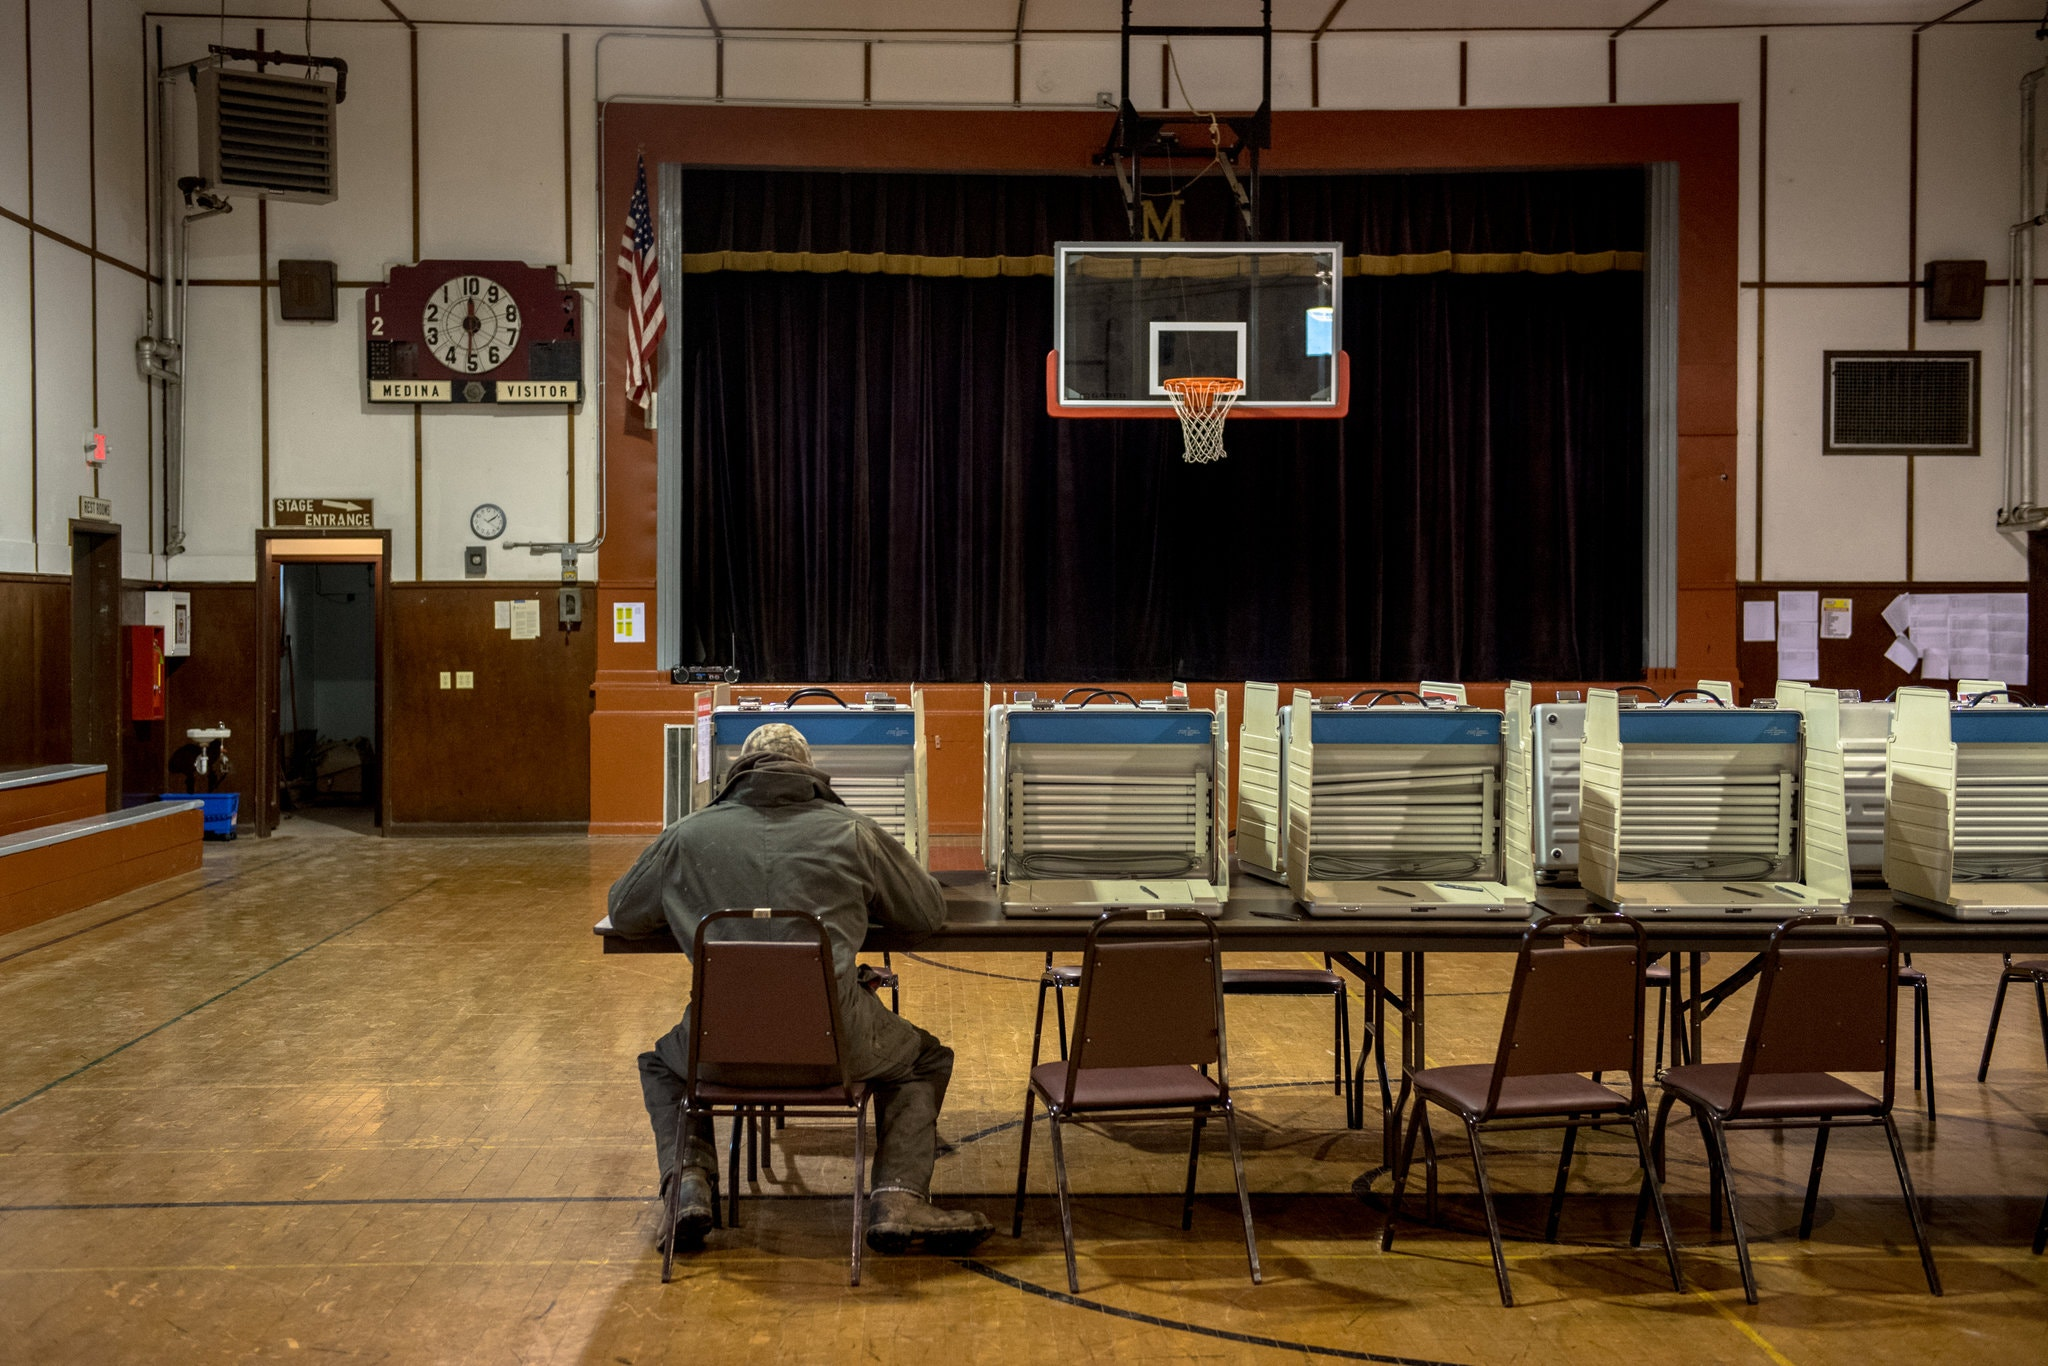 A voter casting his ballot in the midterm elections last year in Medina, N.D. Credit Hilary Swift for The New York Times